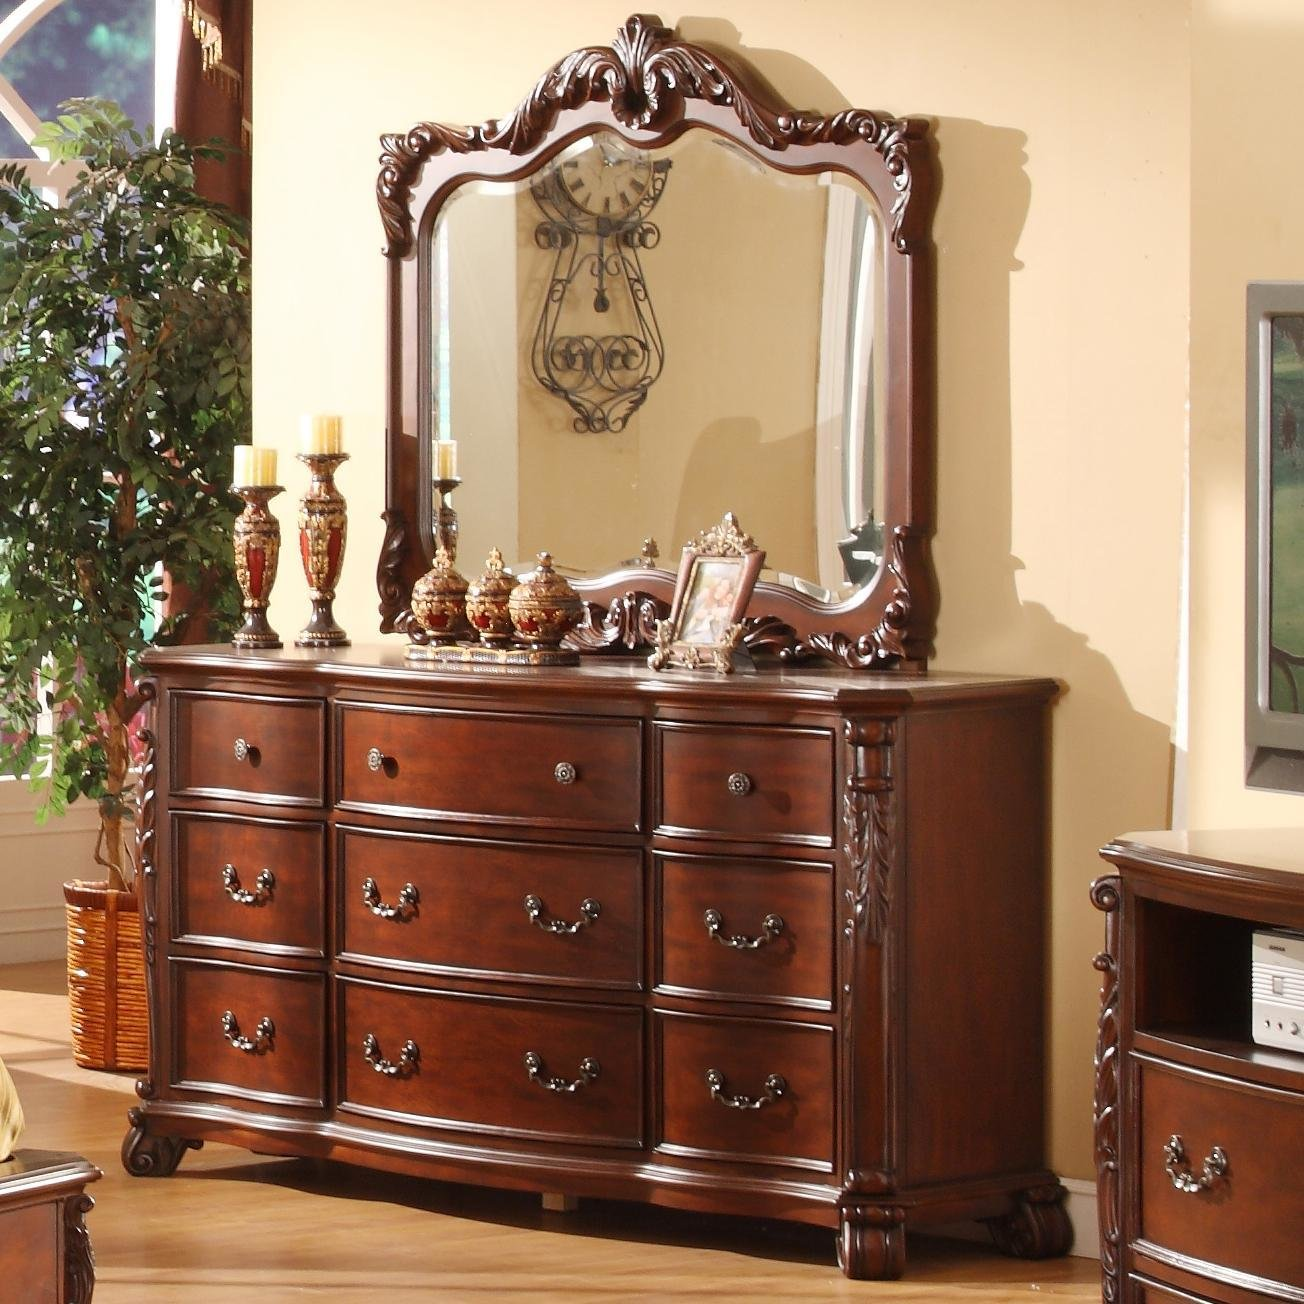 Best Lifestyle Frenchy Traditional 9 Drawer Dresser And Mirror With Acanthus Leaf Detailing Royal With Pictures